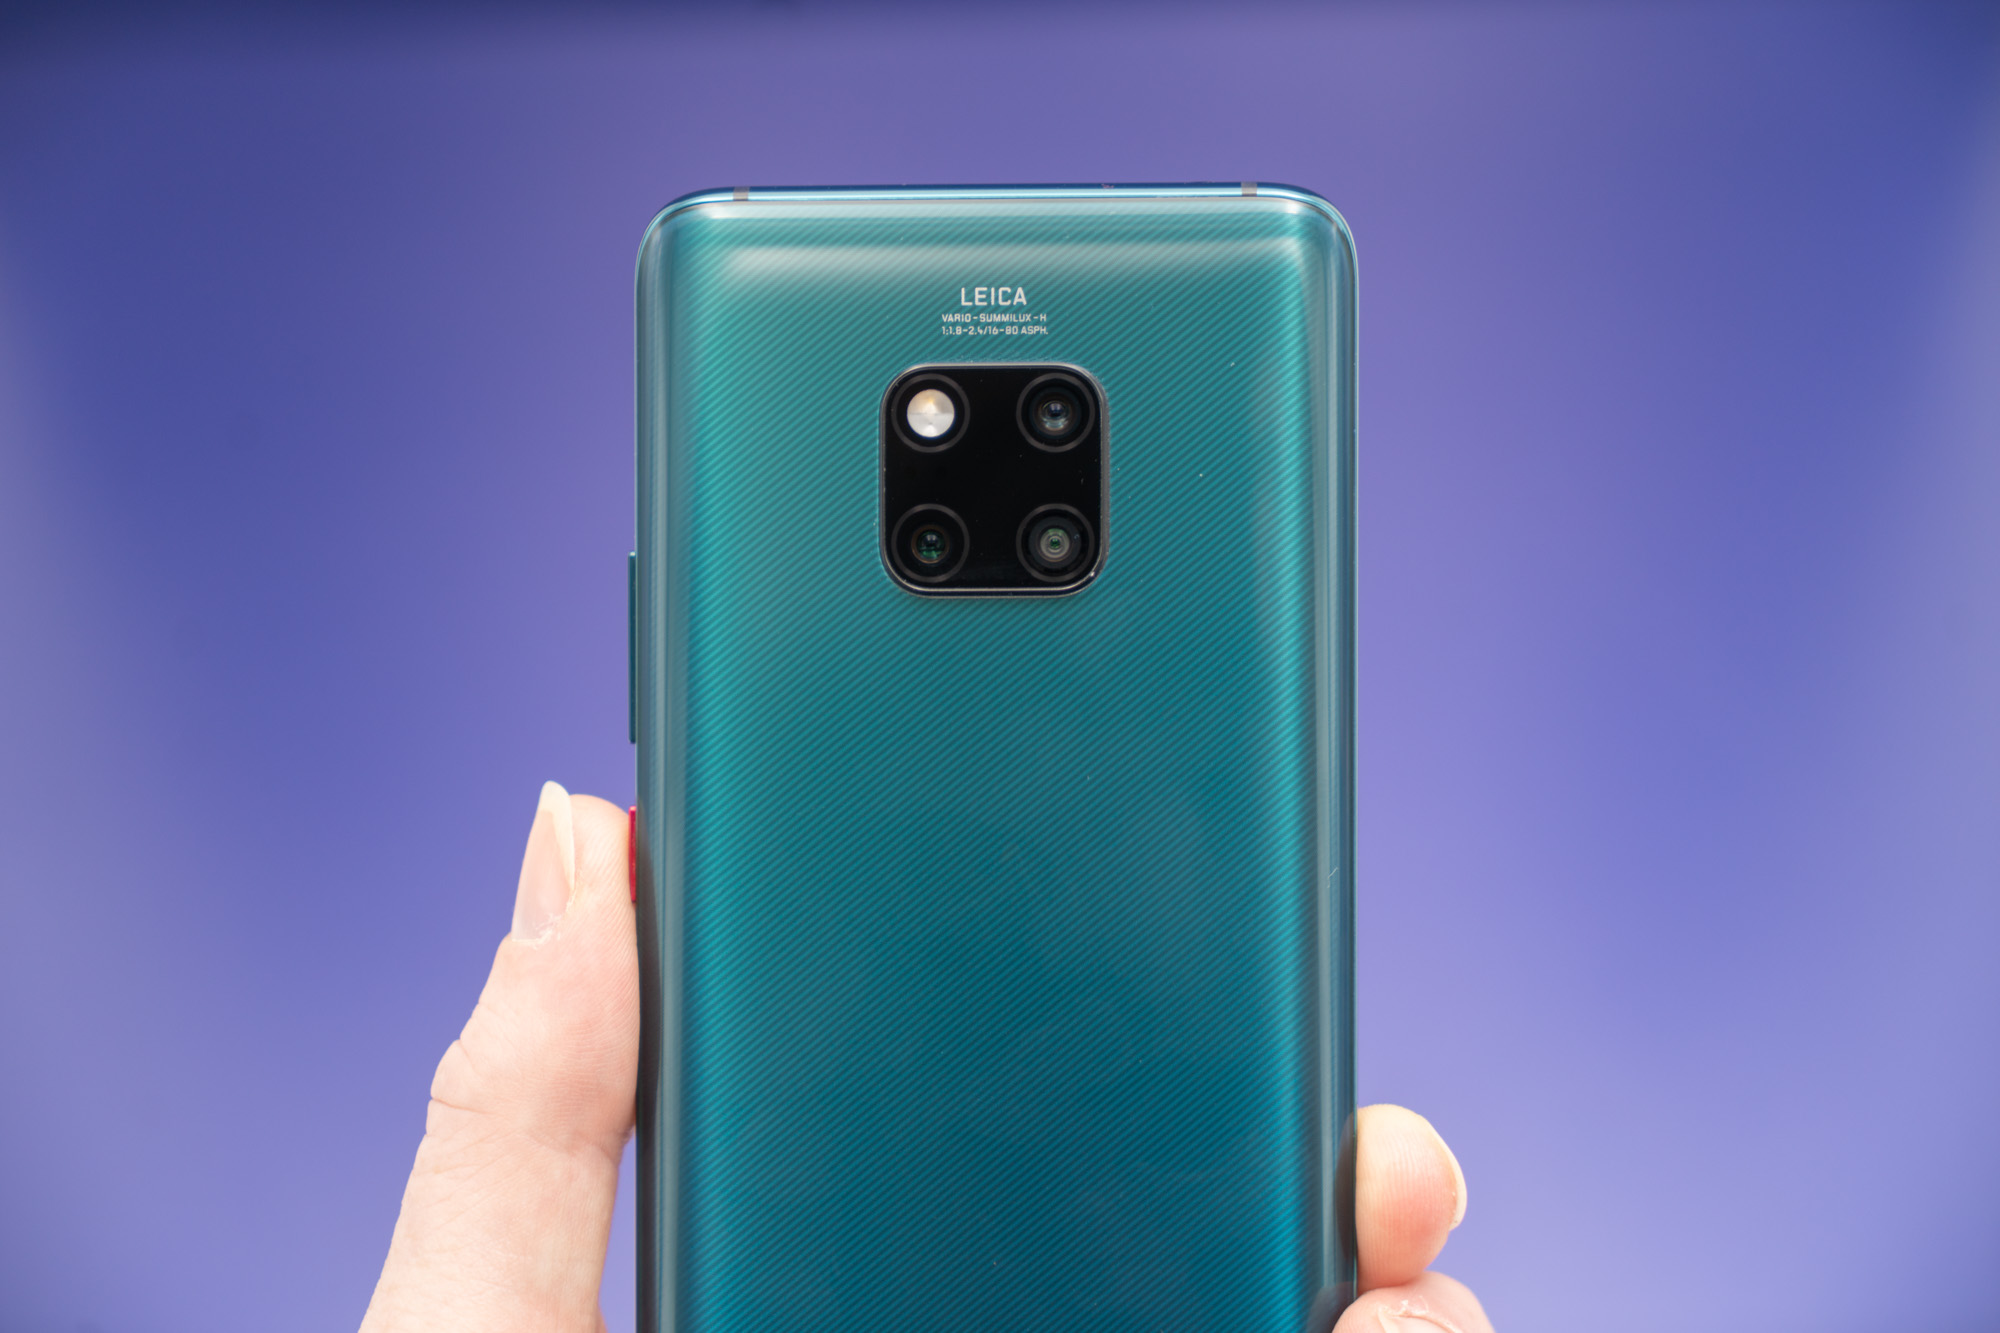 Huawei Mate 20 Pro goes wide with Leica 16-80mm camera